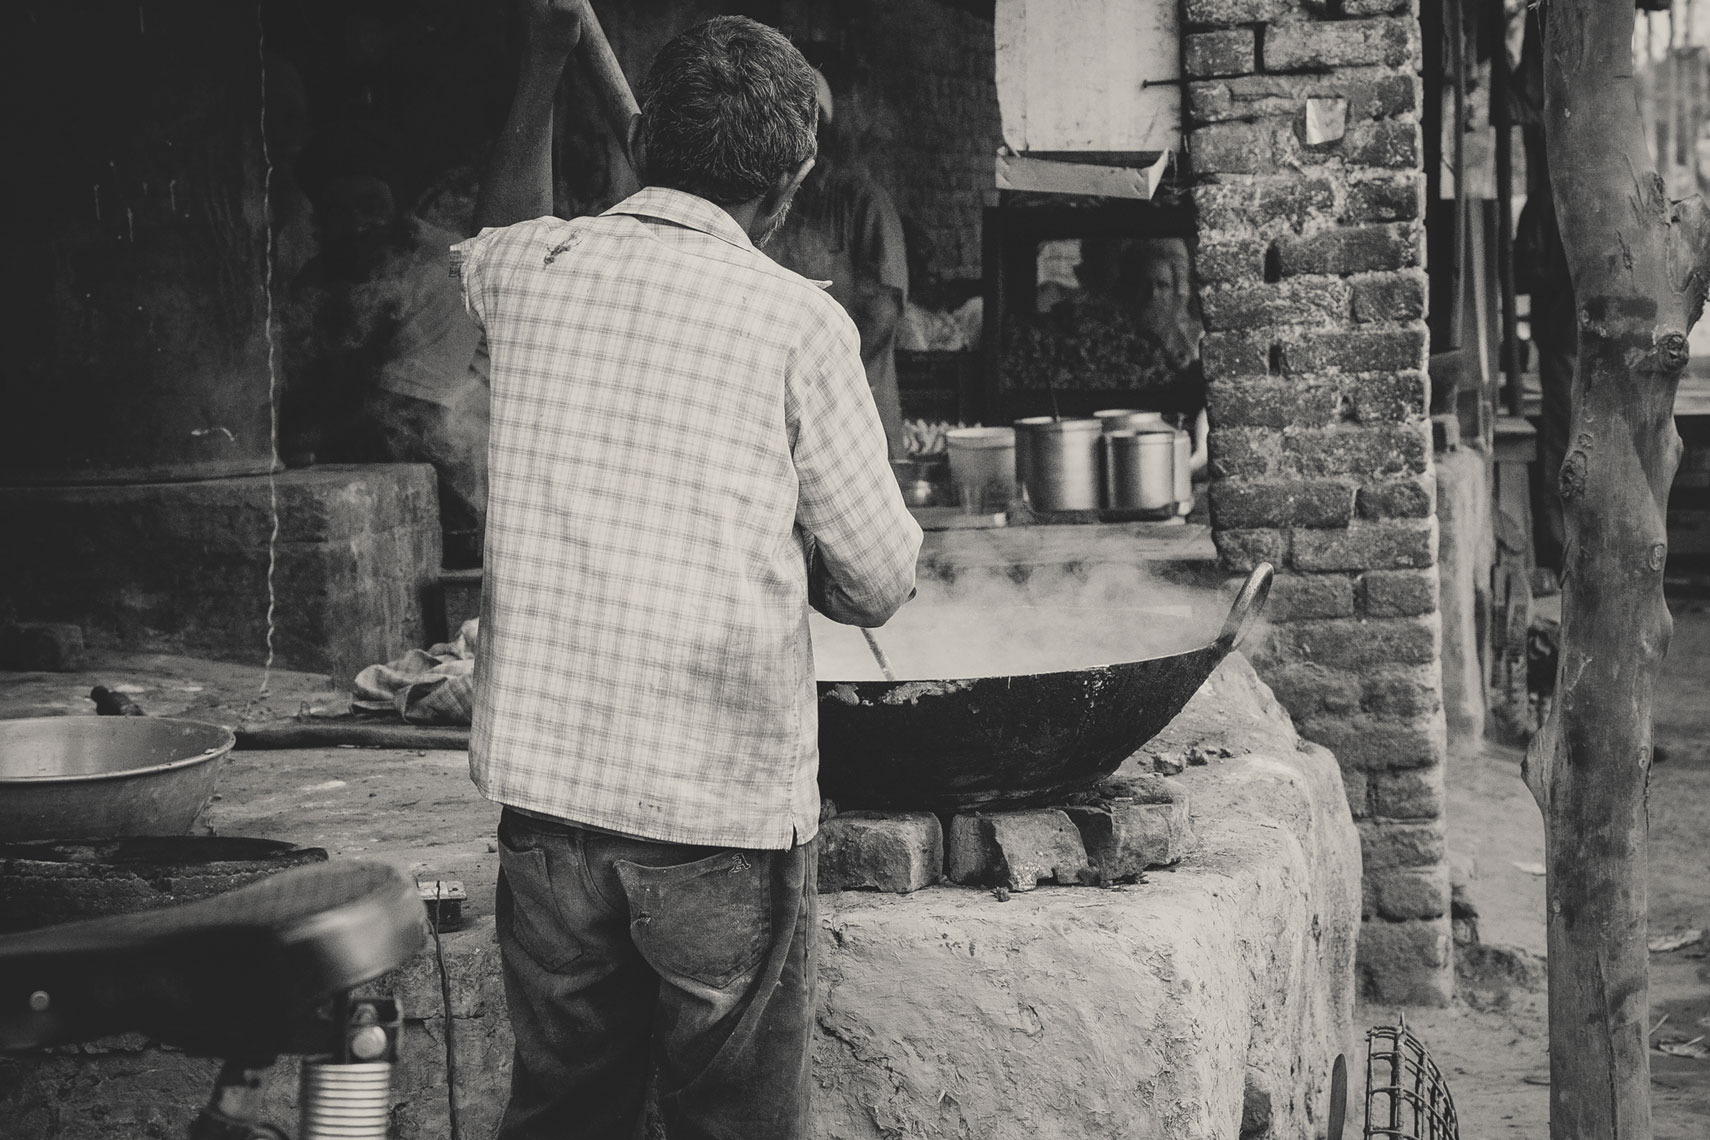 deepi-ahluwalia-india-man-cooking